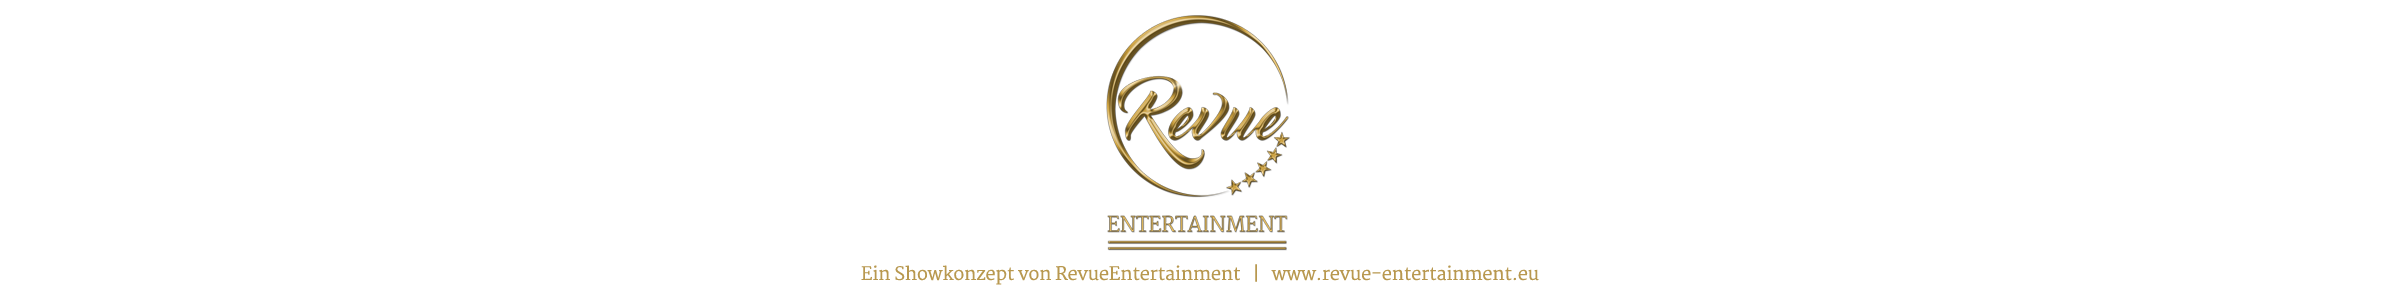 Ein Showkonzept von RevueEntertainment | www.revue-entertainment.eu